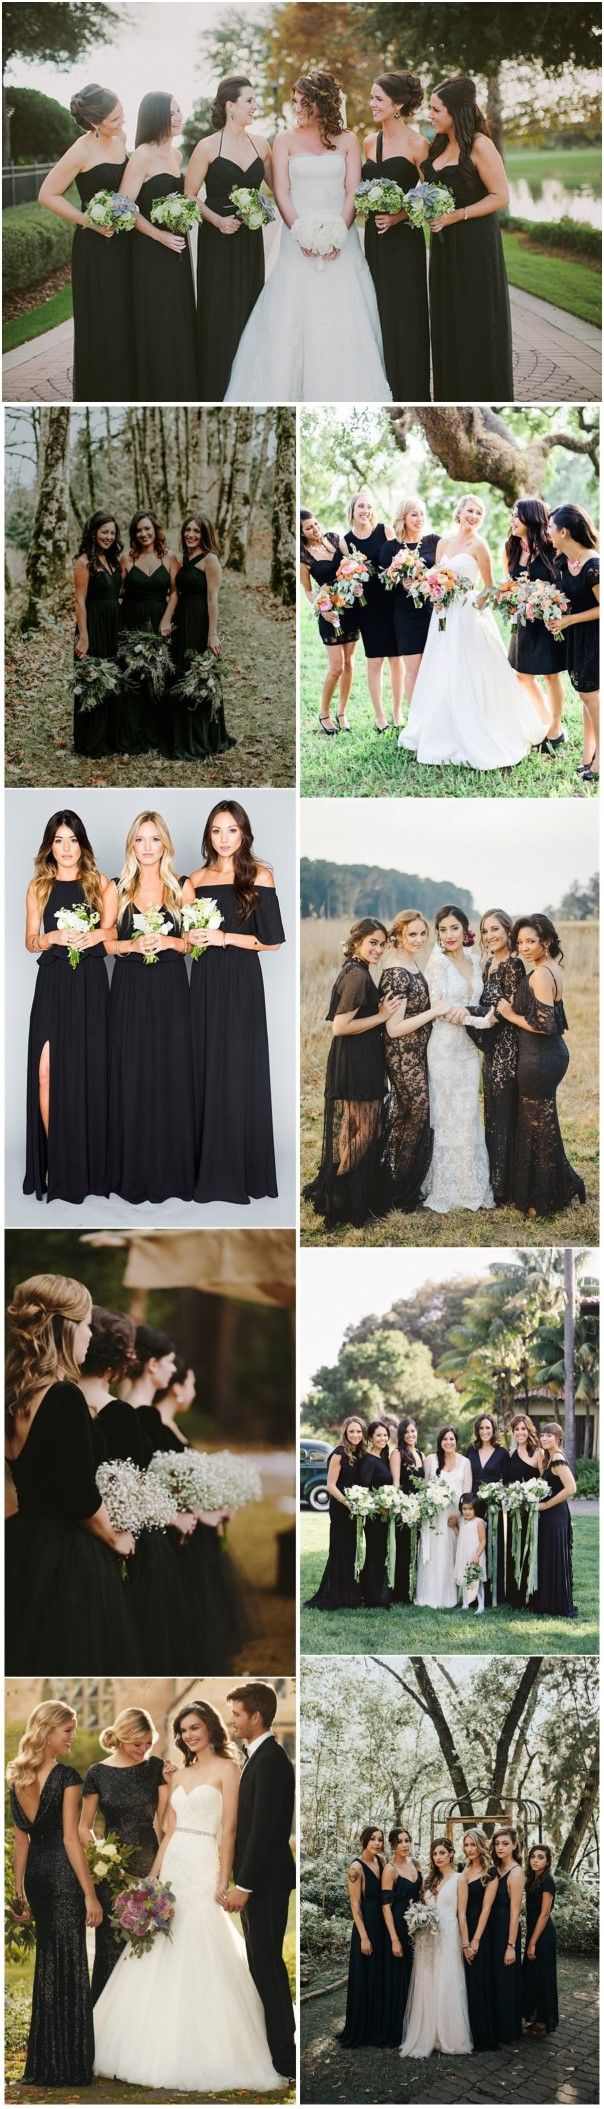 c26db17fc843 Bridesmaid Dresses » Don't Miss These 22 Black Bridesmaid Dresses for Your  Fall and